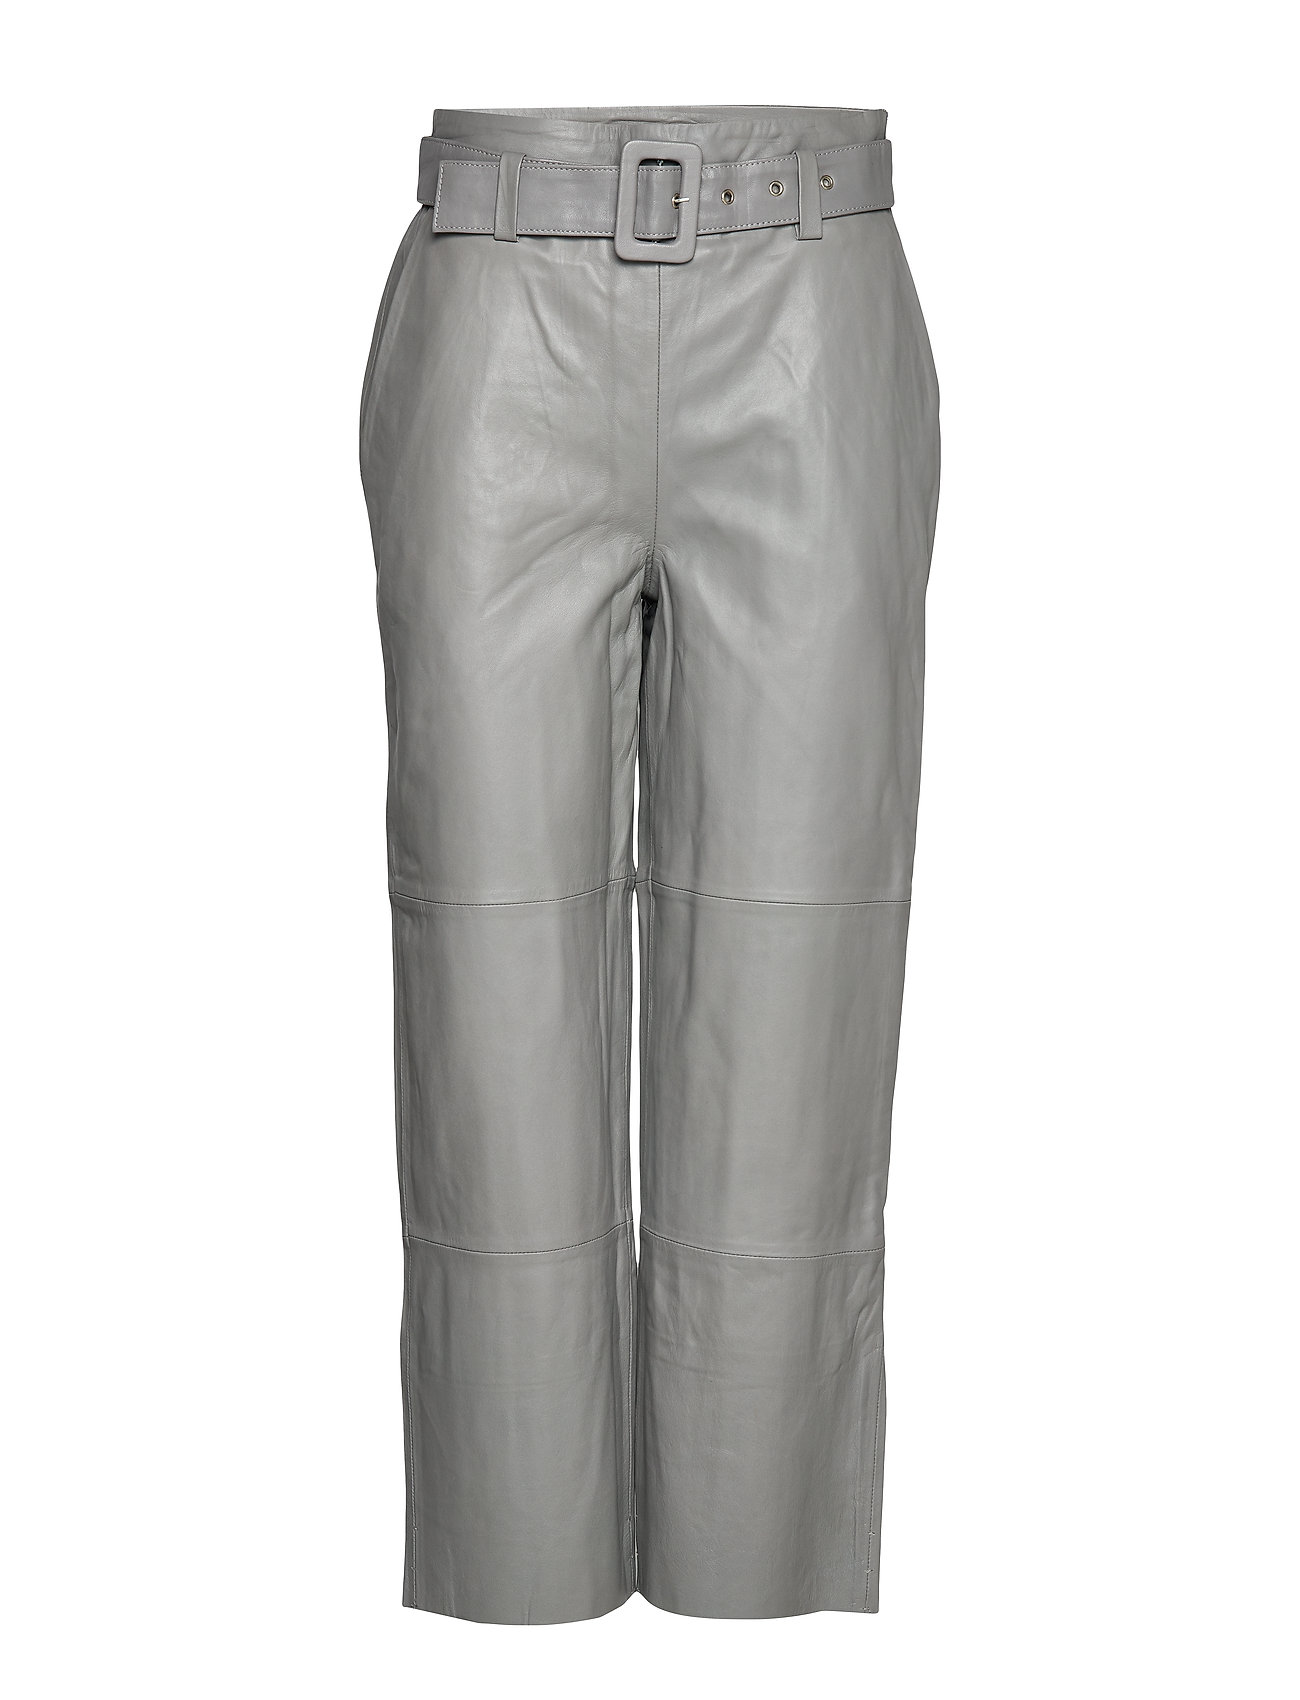 Image of Storiagz Pants Leather Leggings/Bukser Grå Gestuz (3252734723)